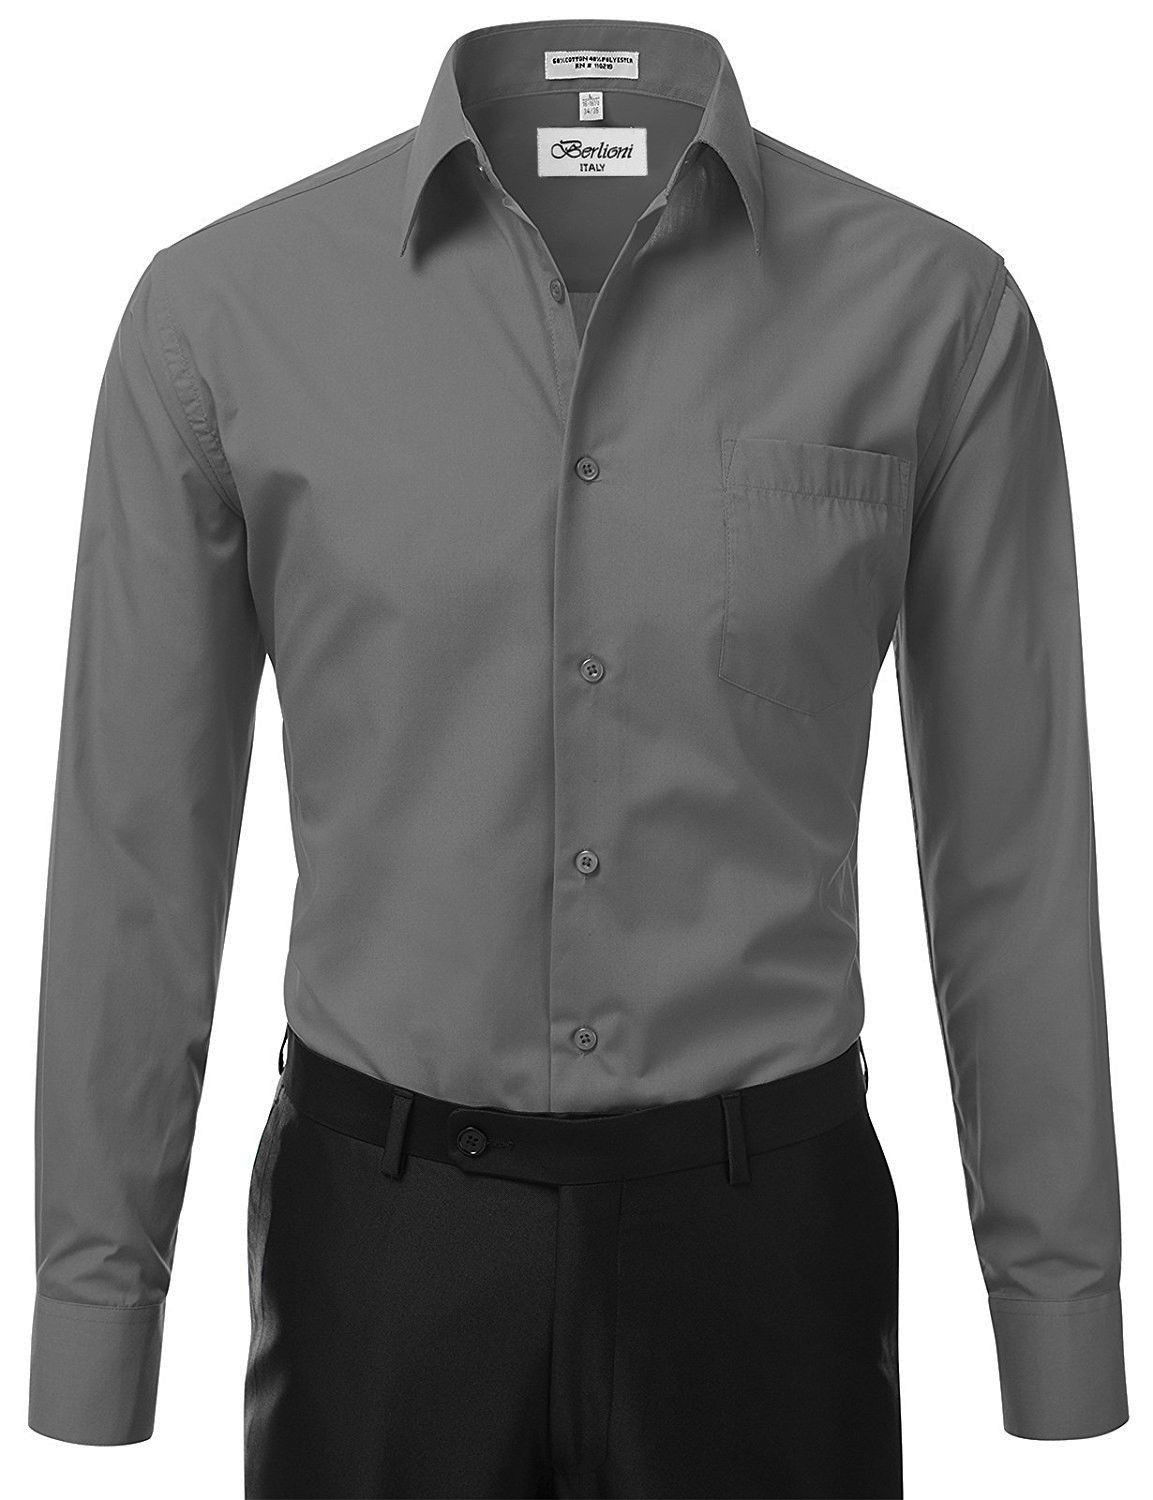 Berlioni-Italy-Men-039-s-Premium-Classic-French-Convertible-Cuff-Solid-Dress-Shirt thumbnail 24